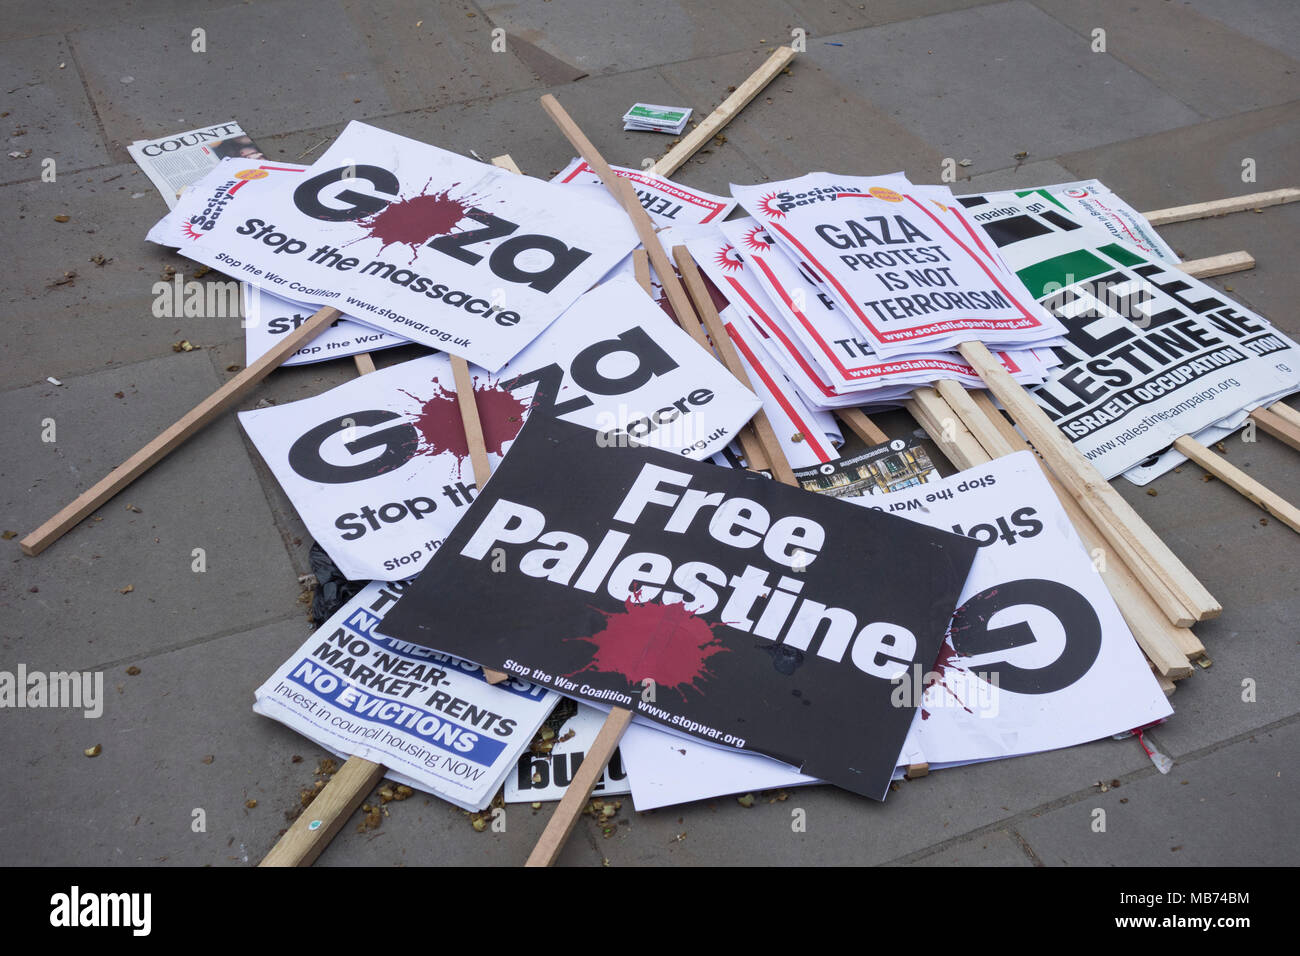 London, England, UK.  7 April, 2018.  Protest for Gaza /Stop the Killing demonstration banners in Downing Street, London. Organised by Friends of Al-Aqsa, Palestine Solidarity Campaign, Palestinian Forum in Britain © Benjamin John/ Alamy Live News. - Stock Image